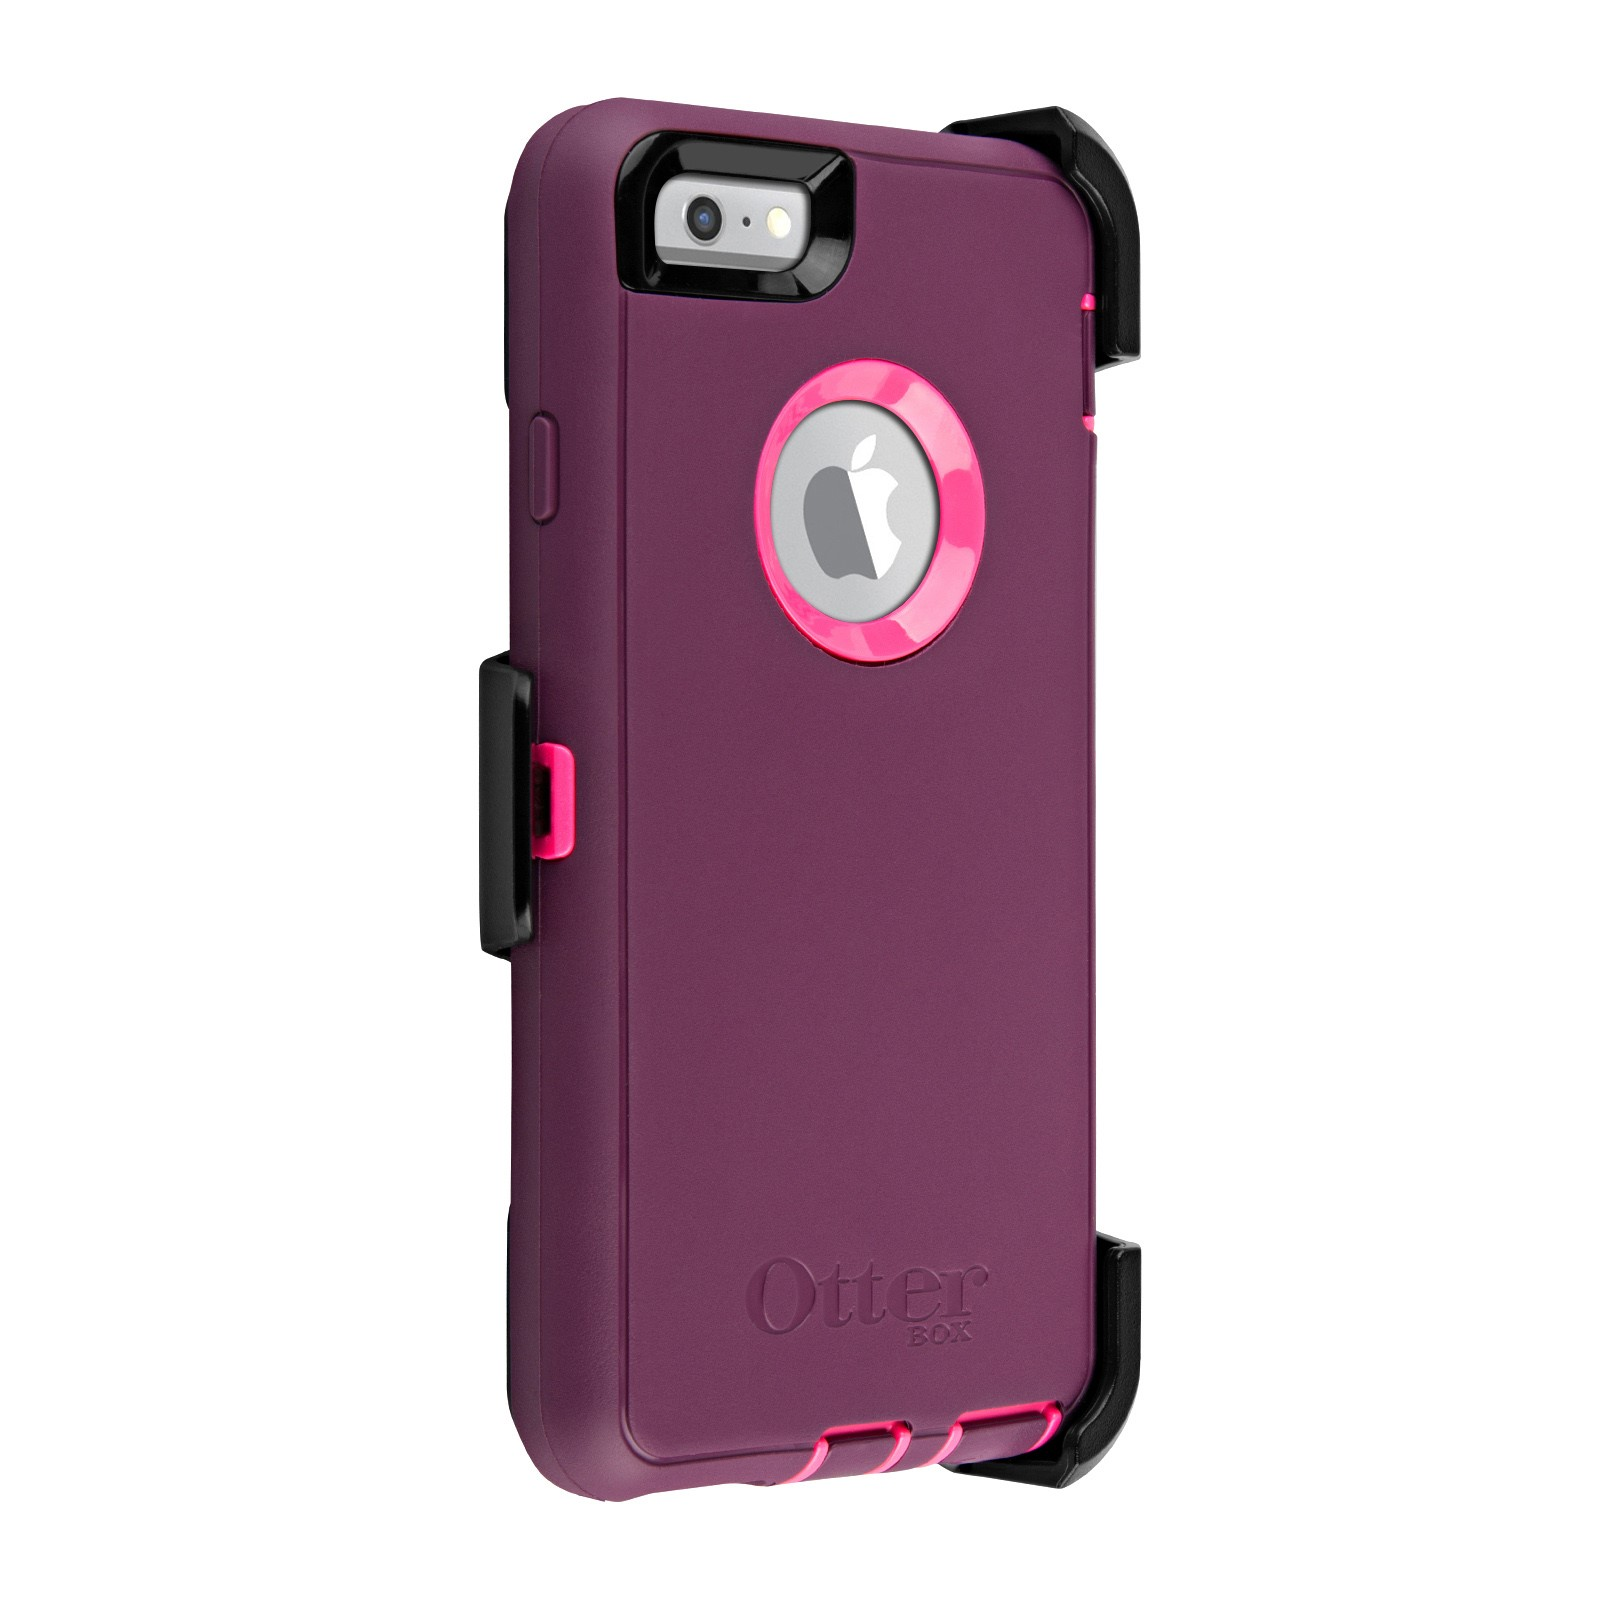 otterbox defender series rugged case for apple iphone 6s amp 6